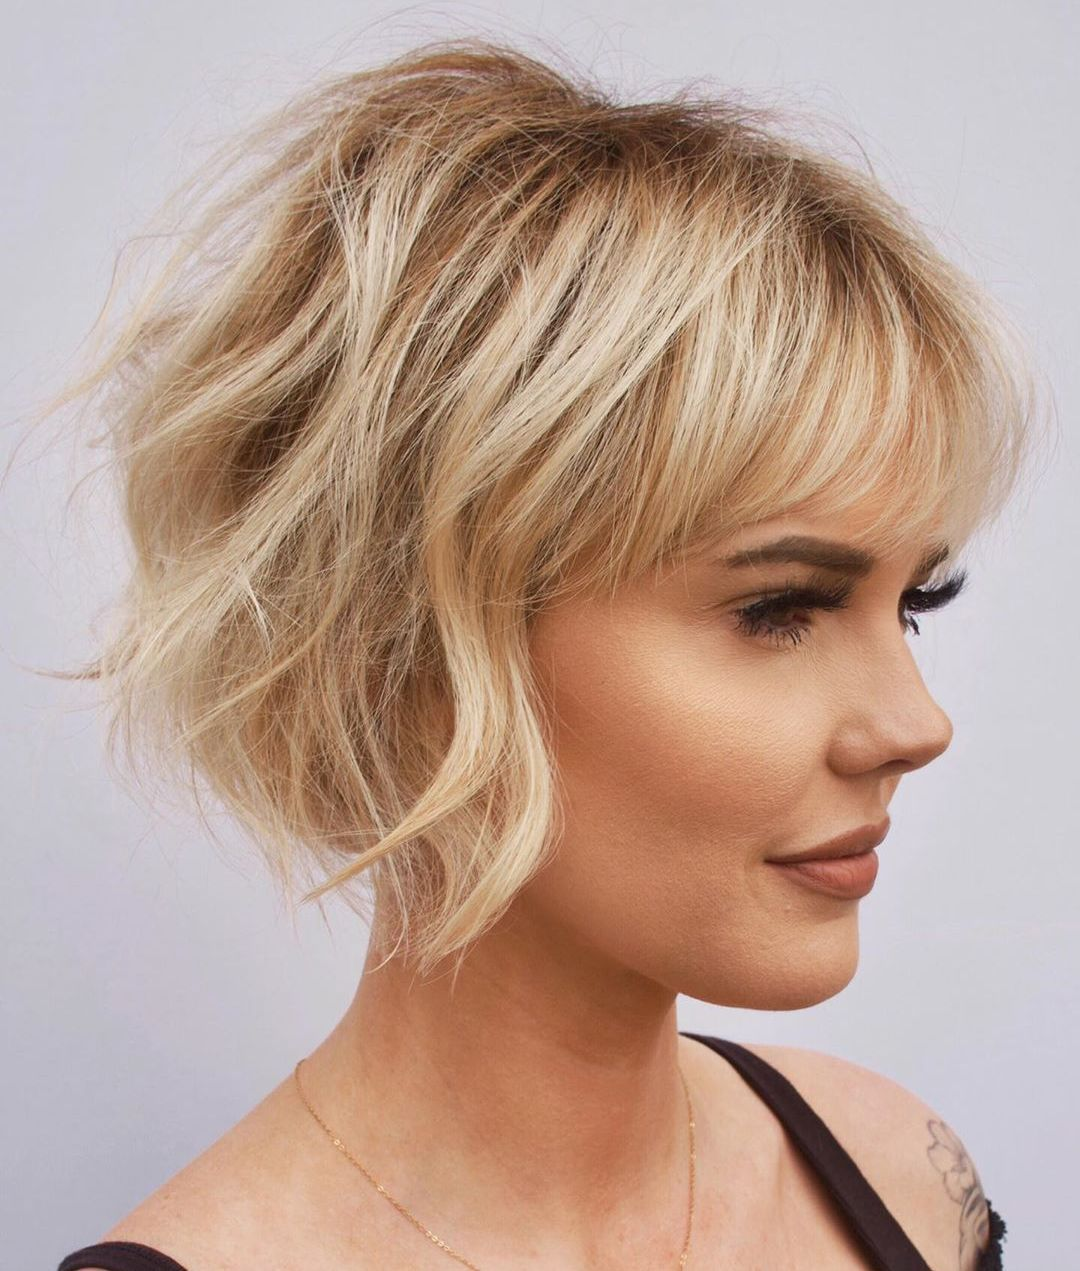 40 Newest Haircuts for Women and Hair Trends for 2